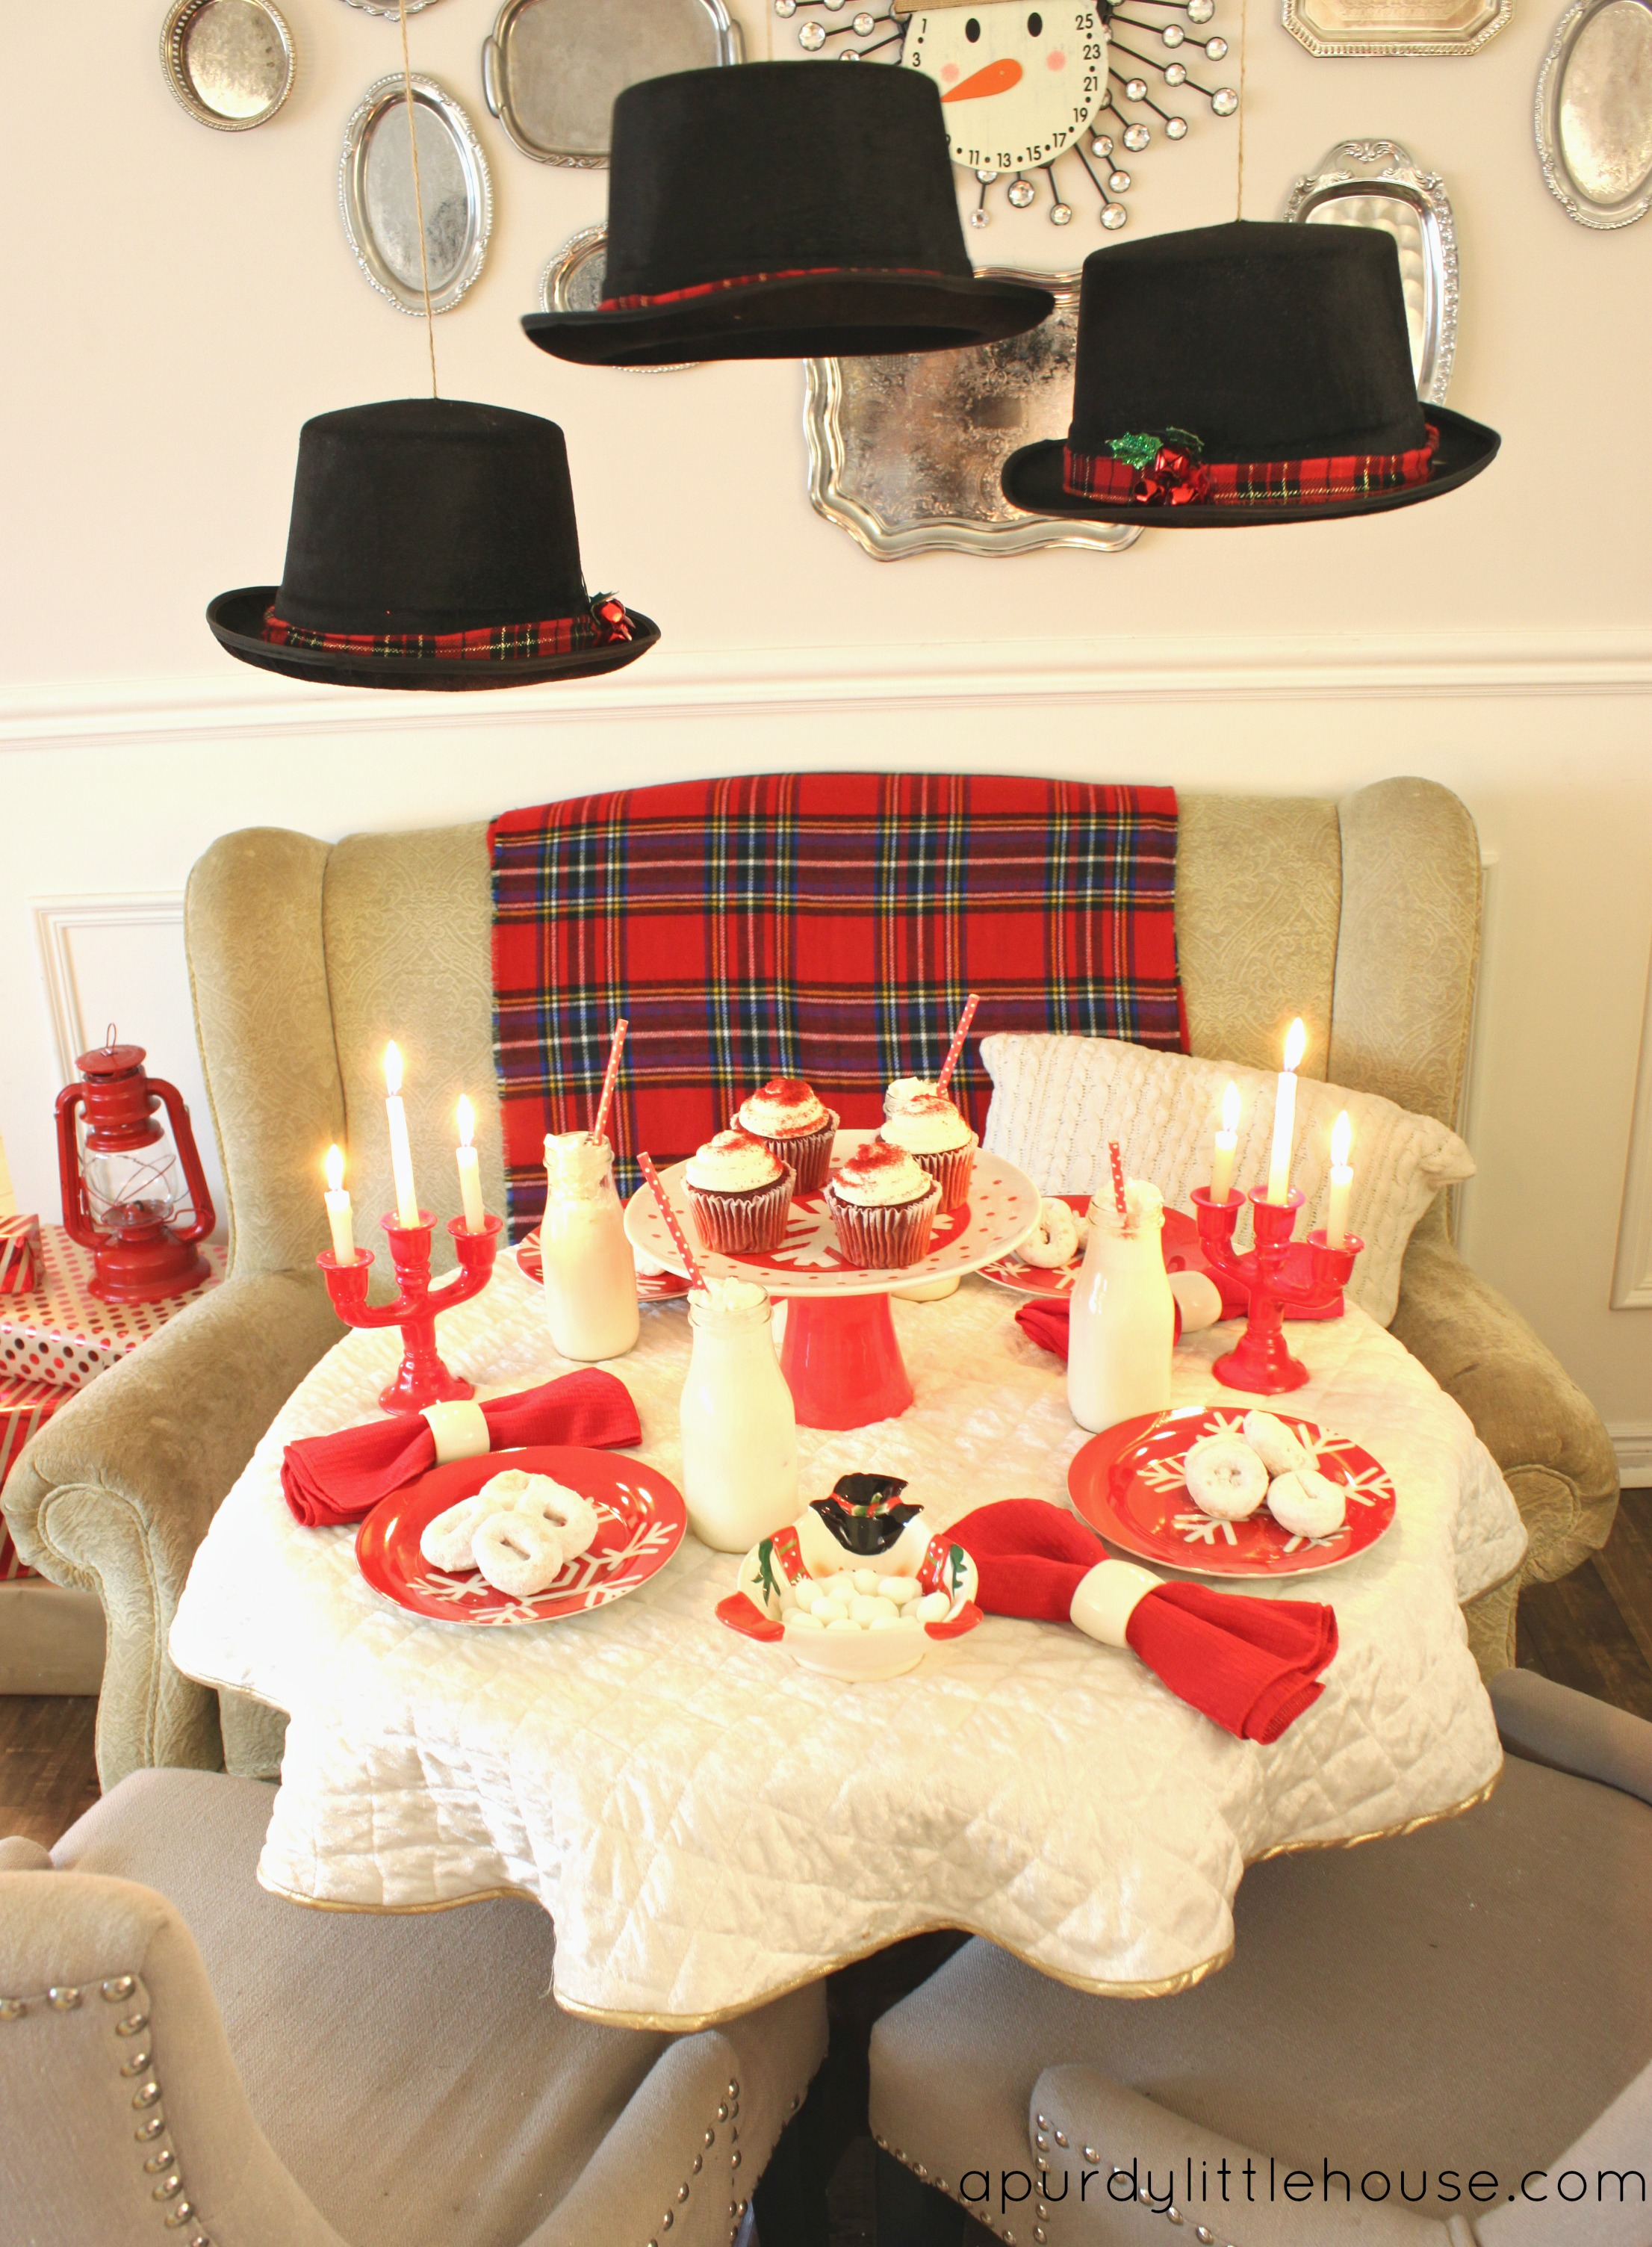 Frosty the Snowman Inspired table setting in red and white at apurdylittlehouse.com & Frosty the Snowman Table Setting - a purdy little house